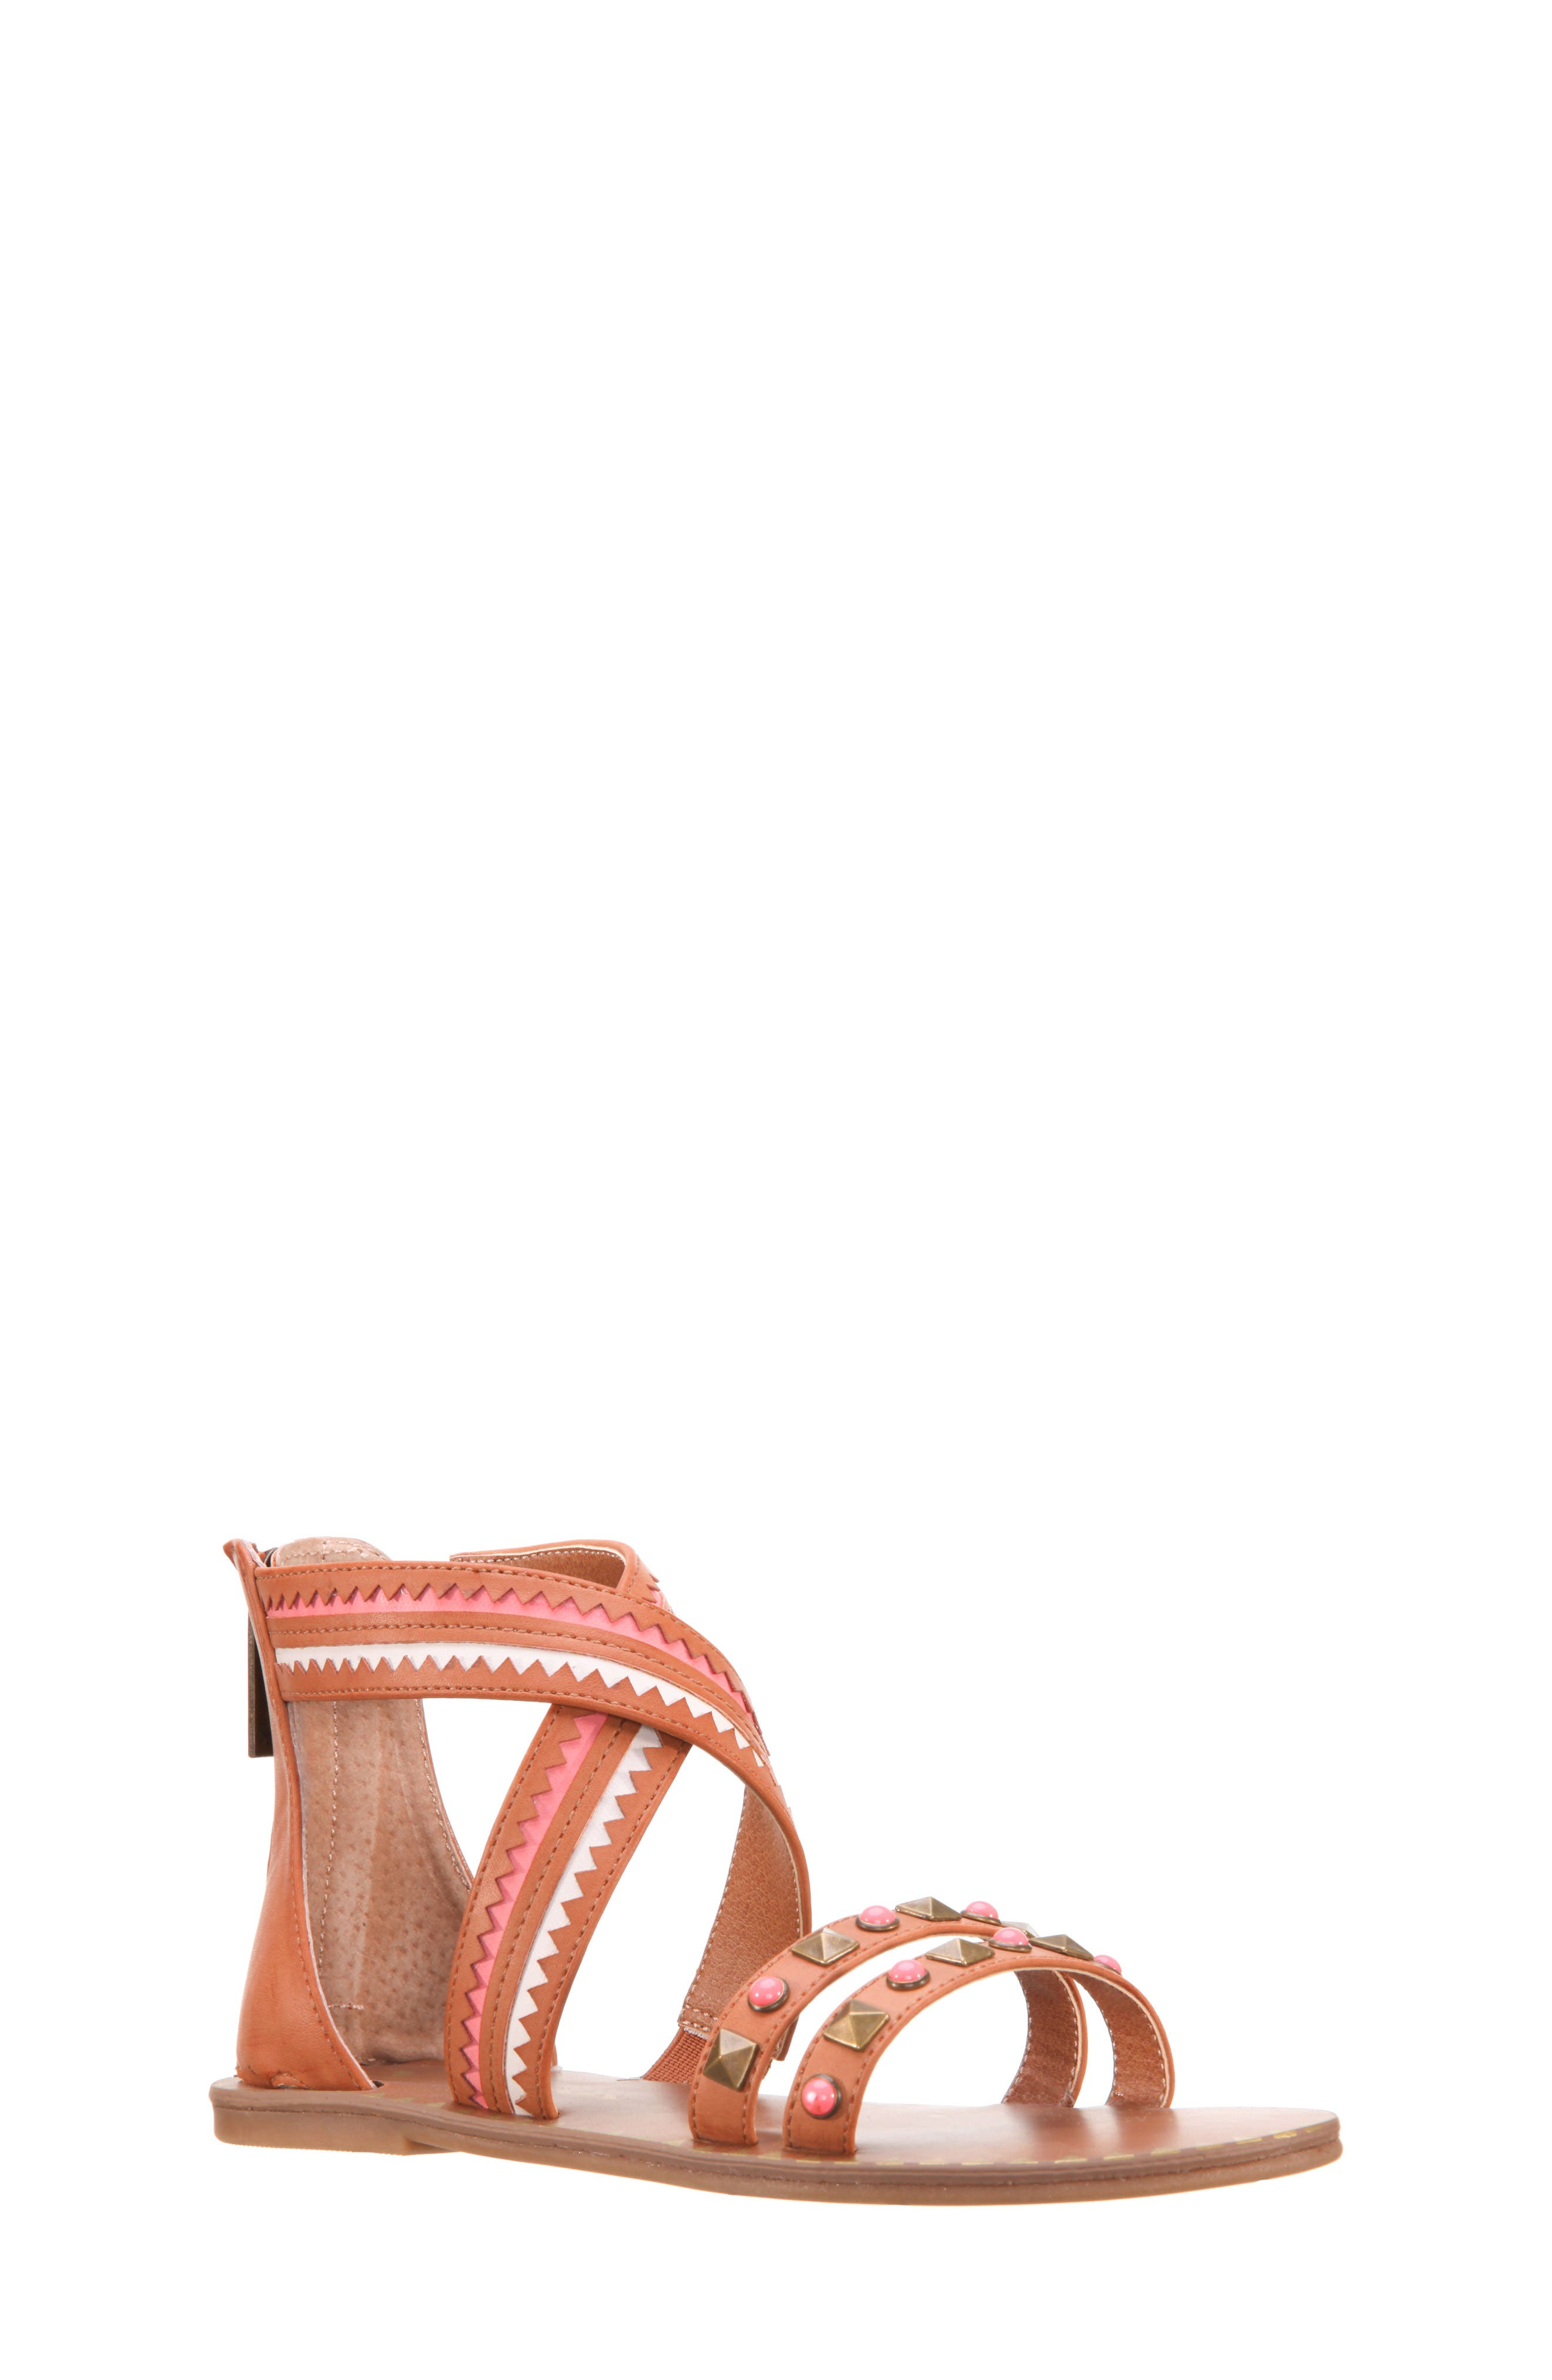 Phelisha Embellished Gladiator Sandal,                         Main,                         color, Tan Burnished